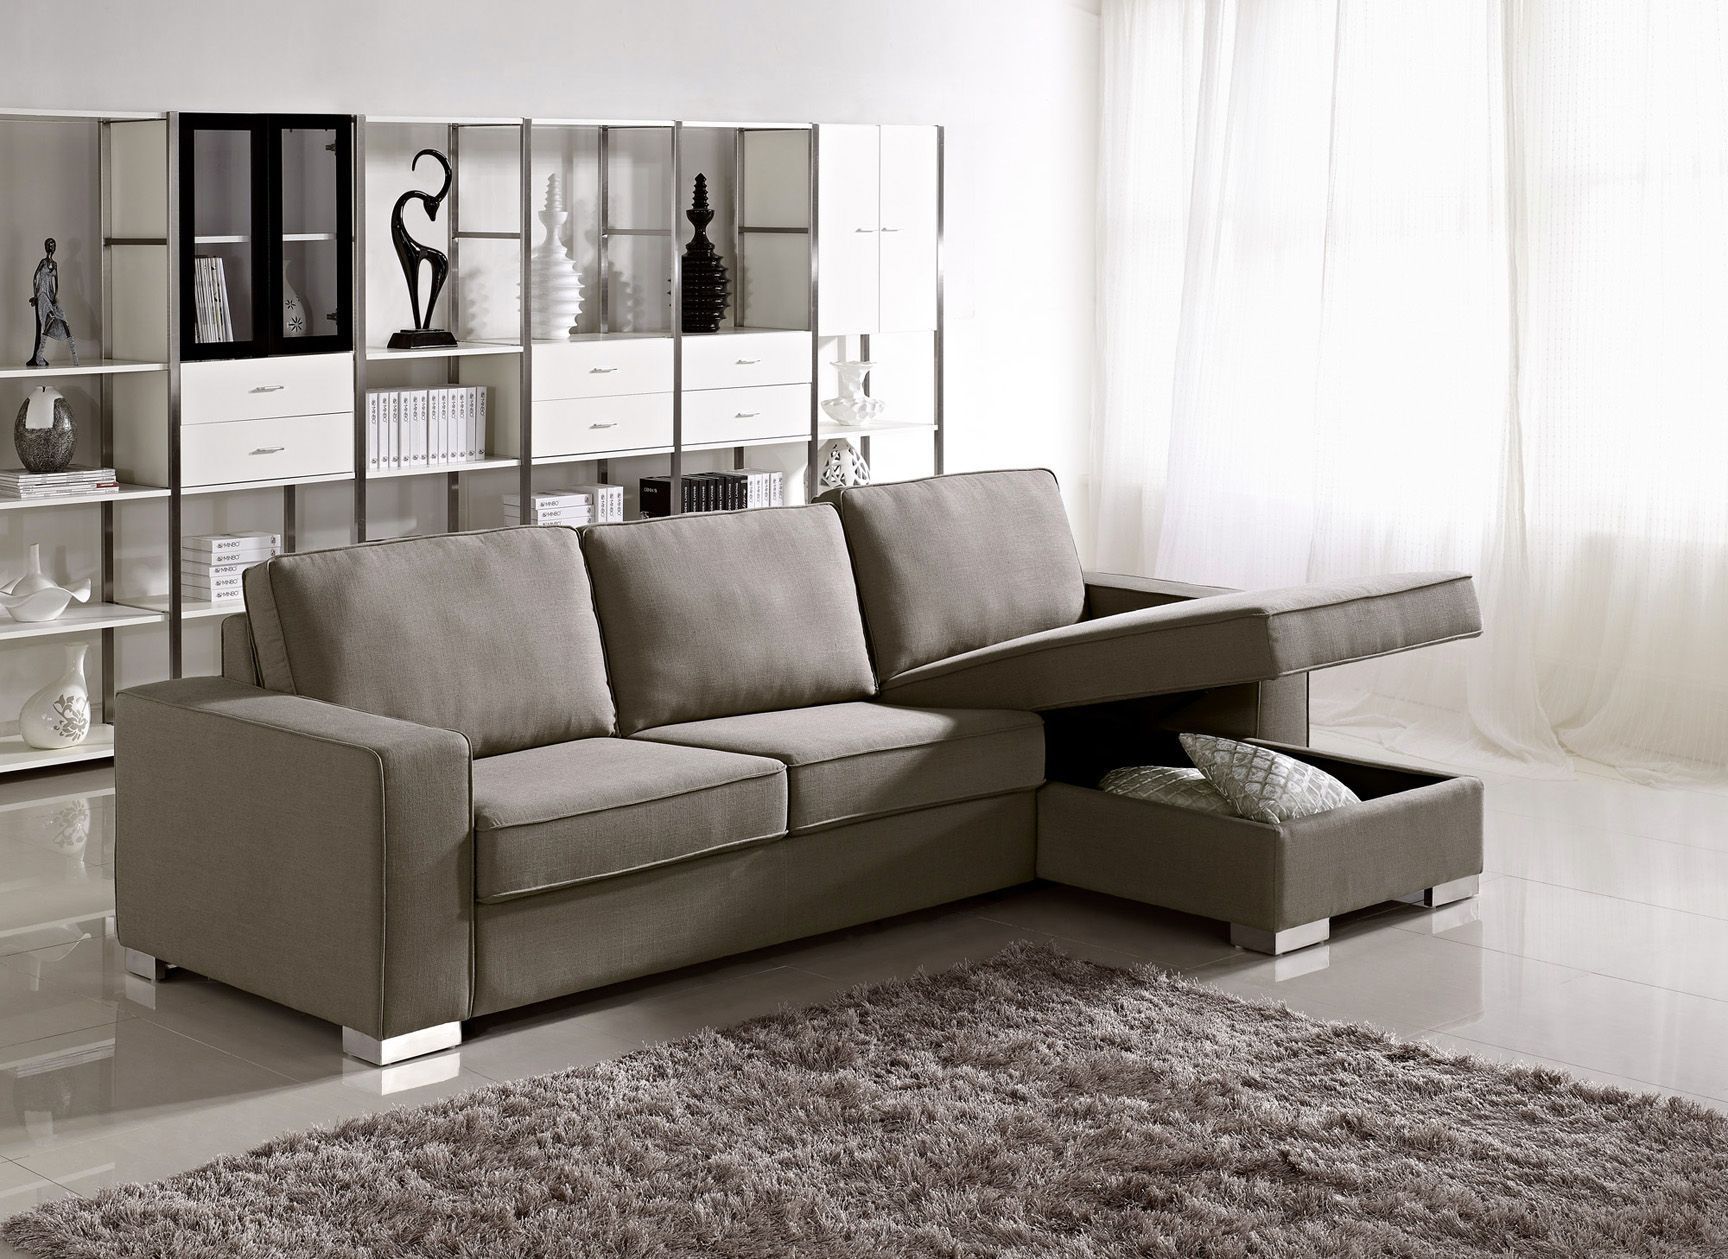 charming cheap sectional sofas in tan with storage on tan ceramics floor plus brown carpet for living room decor ideas